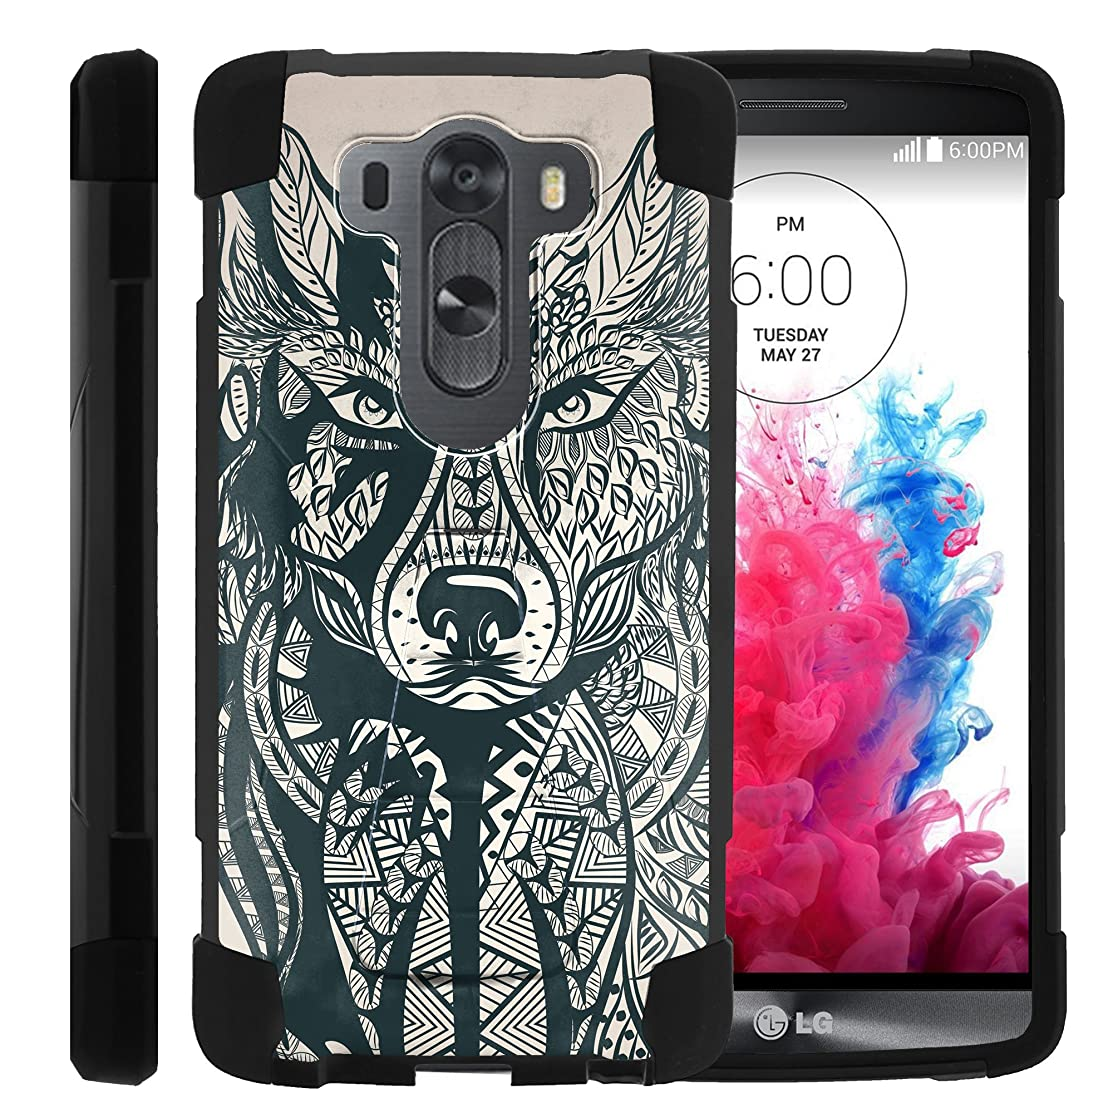 MINITURTLE Case Compatible w/LG V10 | Hybrid Shock Fusion Phone Cover w/Stand Exclusive Artistic Patterns, V10 Wolf Drawing